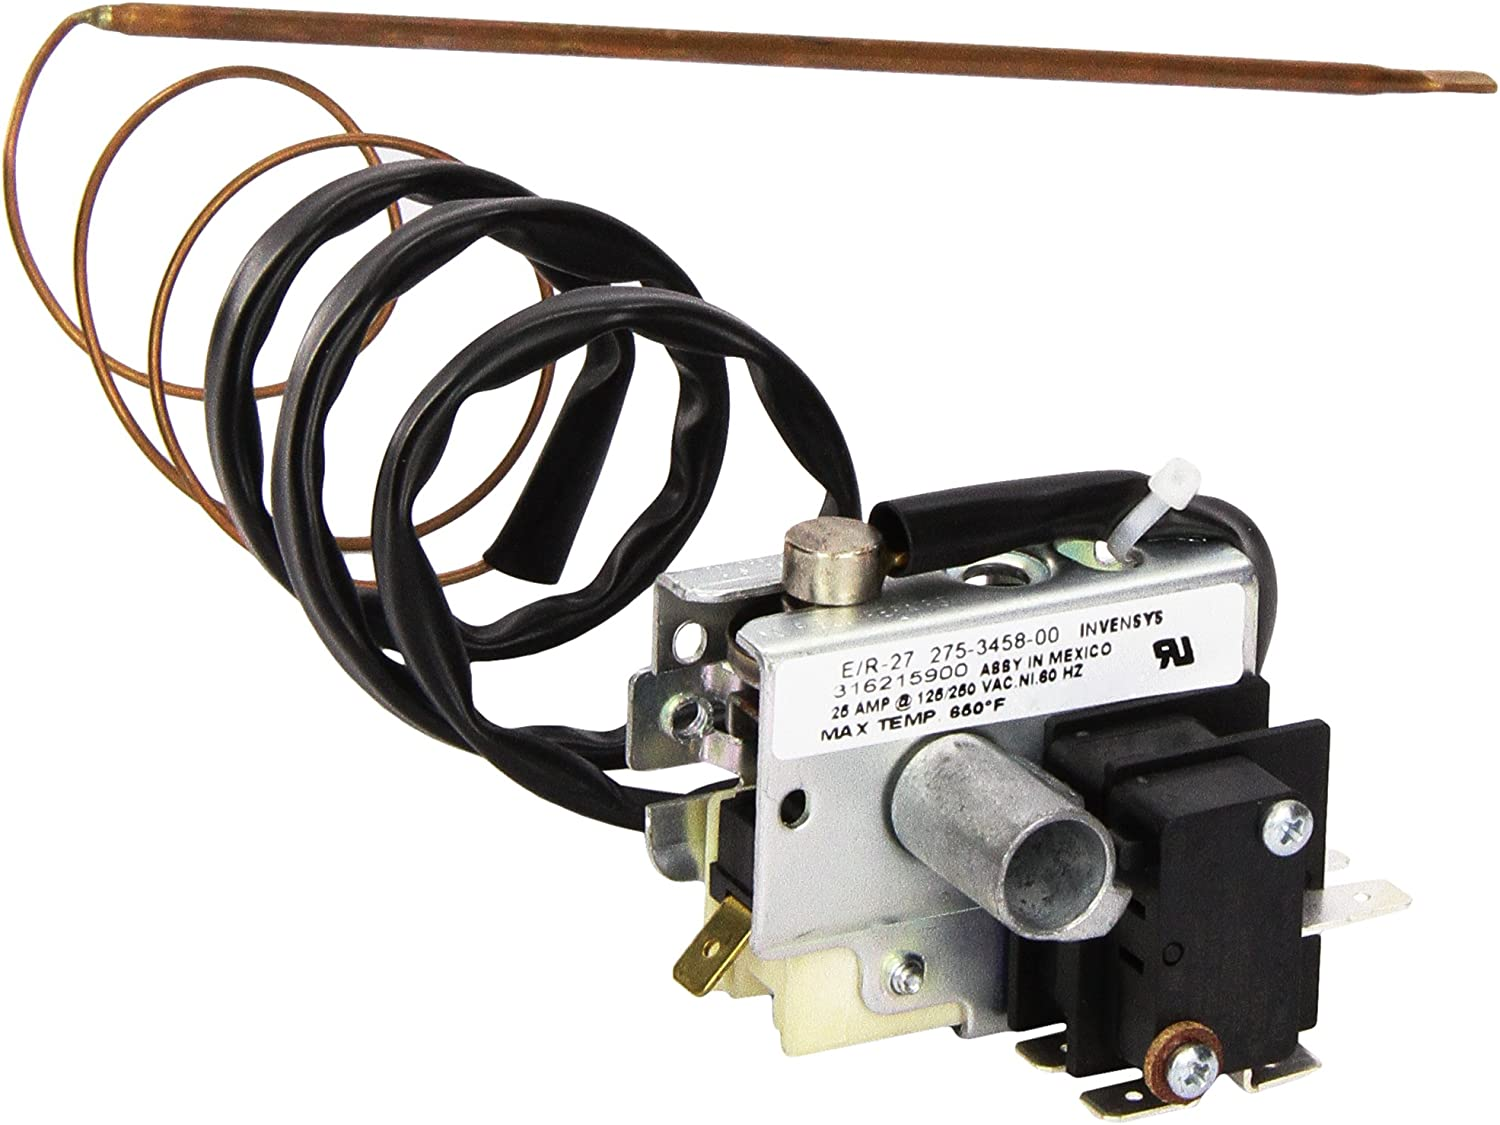 Frigidaire 316215900 Thermostat Range/Stove/Oven, 1, Silver